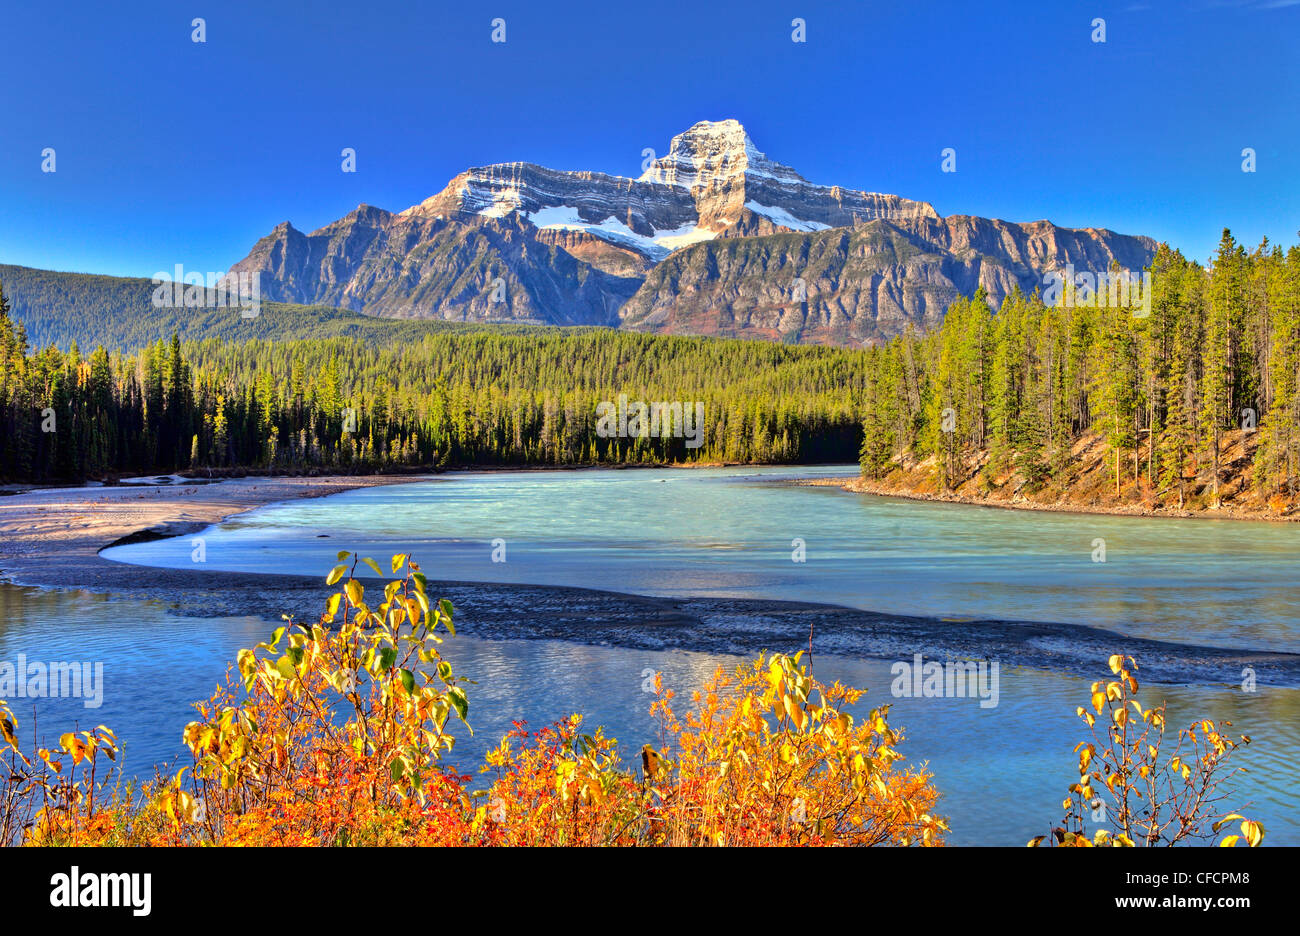 Mt Christie and Athabasca River, Jasper National Park, Alberta, Canada - Stock Image